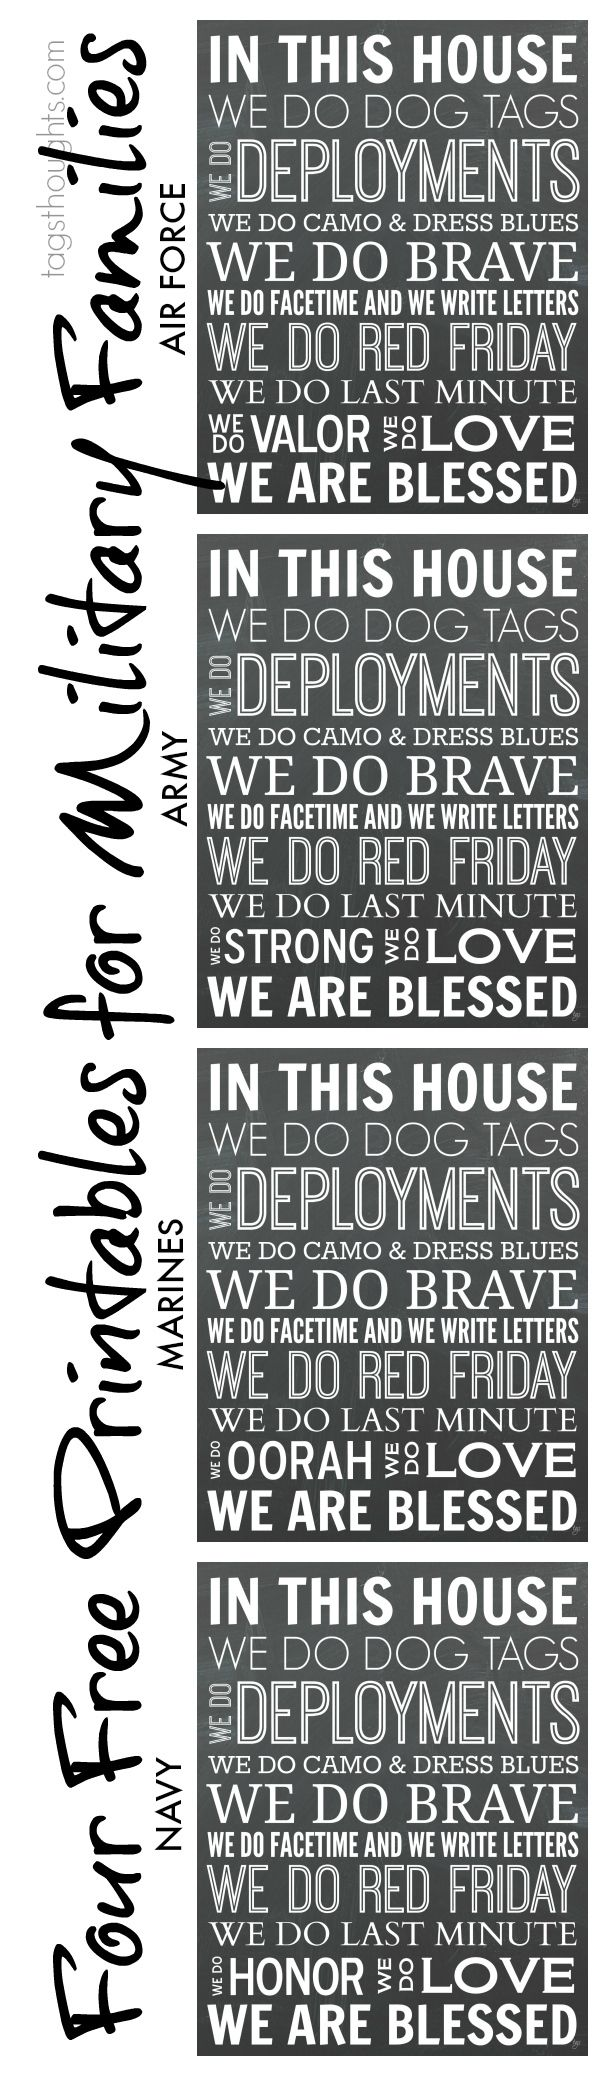 Free Printables for Military Families; In This House, We Do. Printables for Air Force, Army, Marines & Navy. TagsThoughts.com